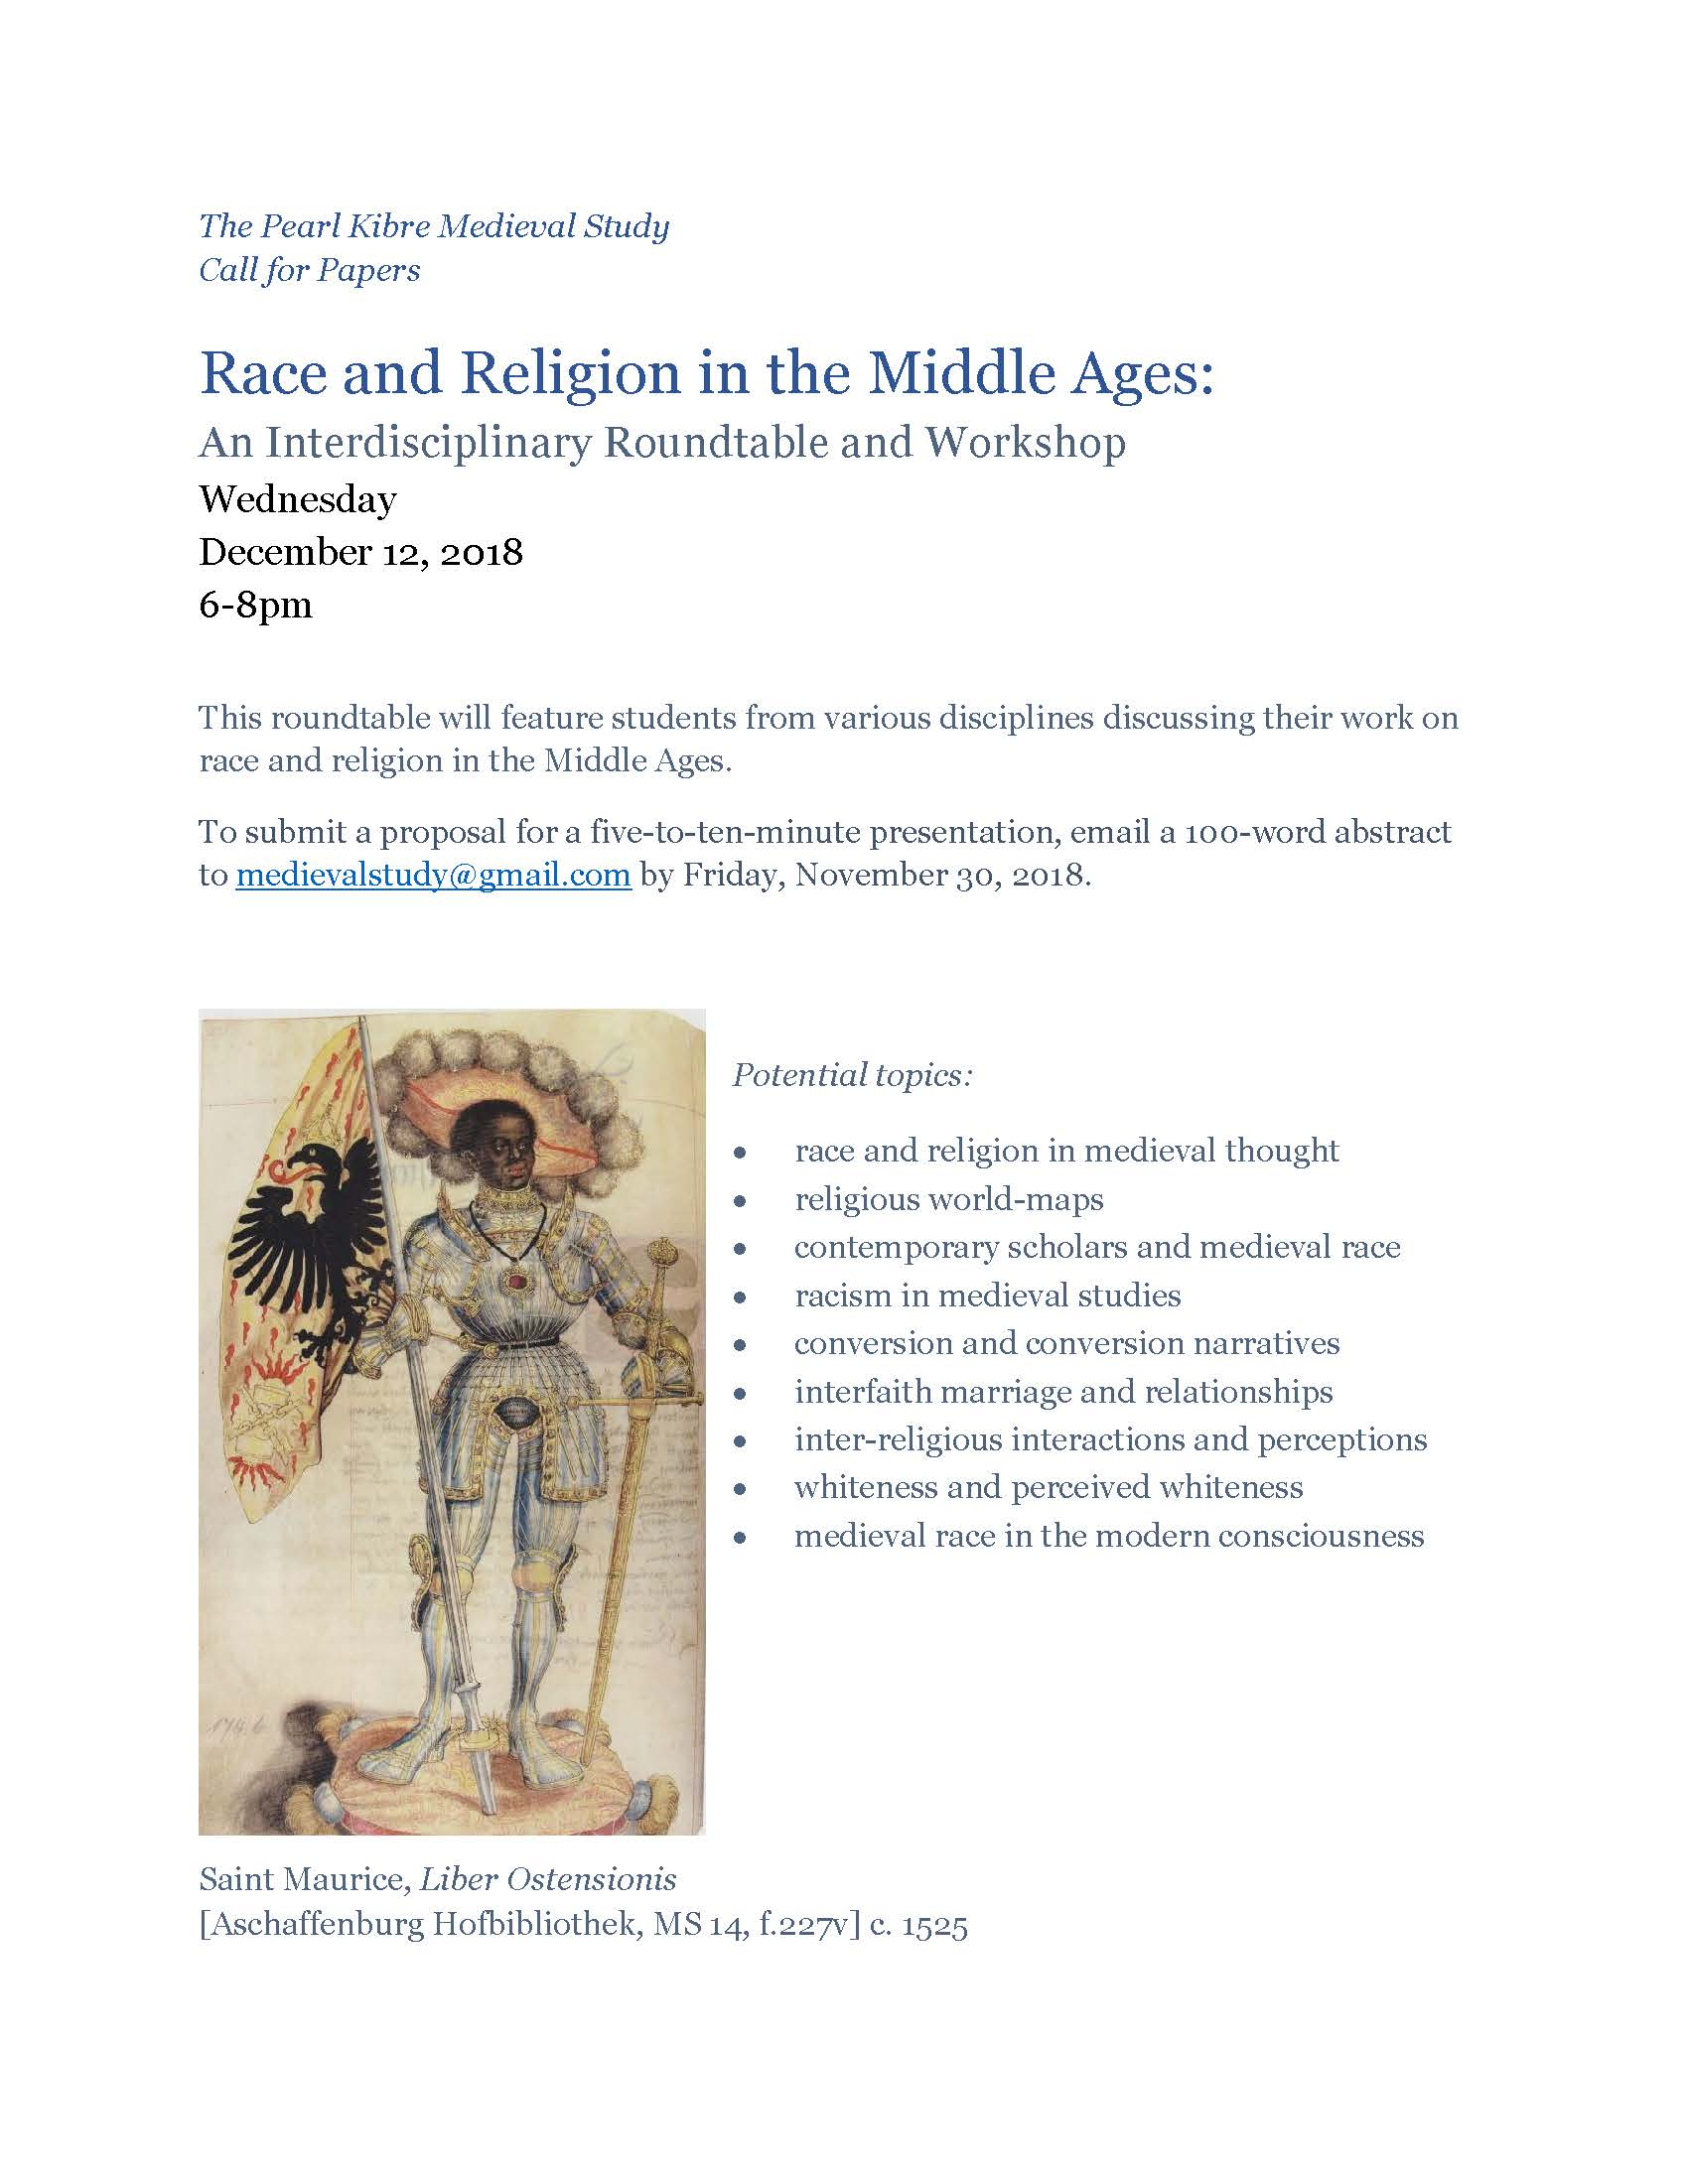 Due Nov 30 | CfP – Race and Religion in the Middle Ages roundtable